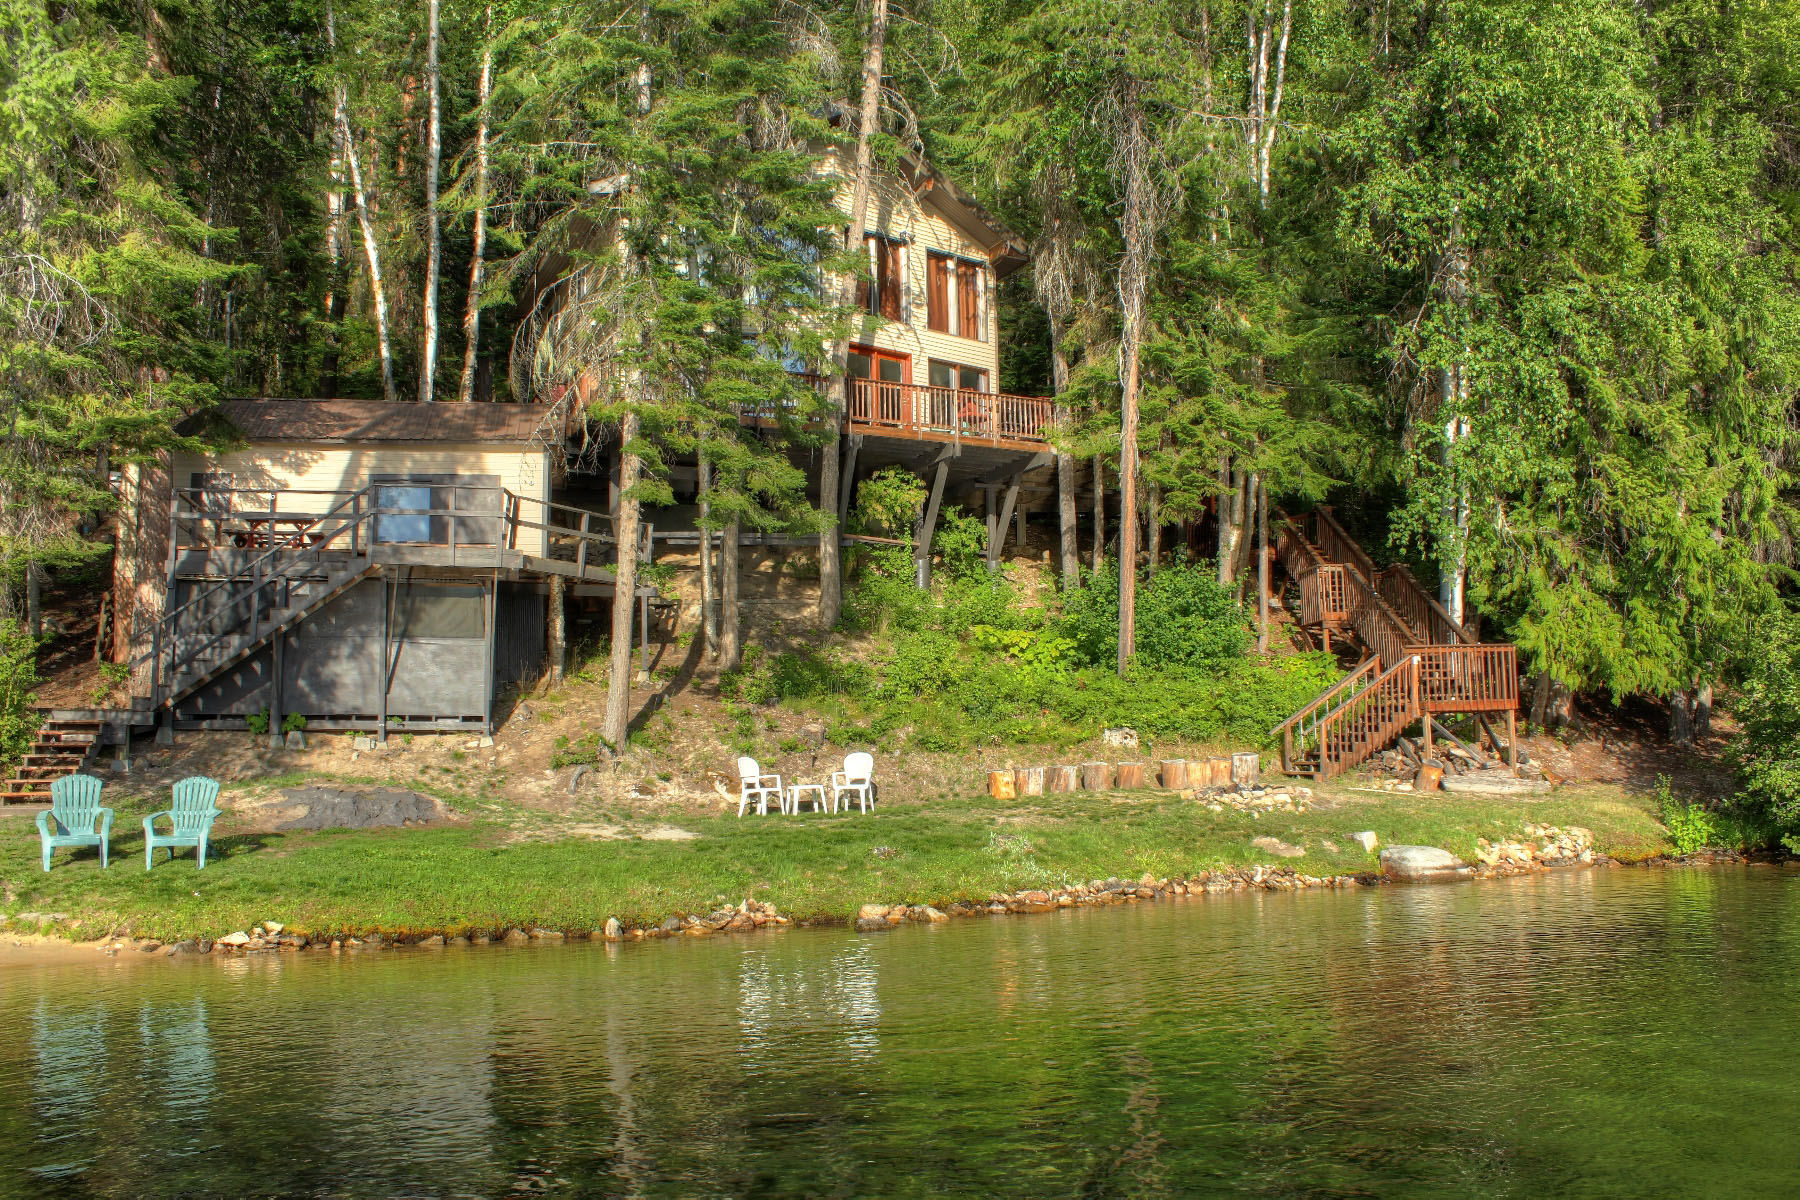 Single Family Home for Sale at Waterfront home located in beautiful Cavanaugh Bay 308 E Cavanaugh Bay Rd Coolin, Idaho, 83821 United States